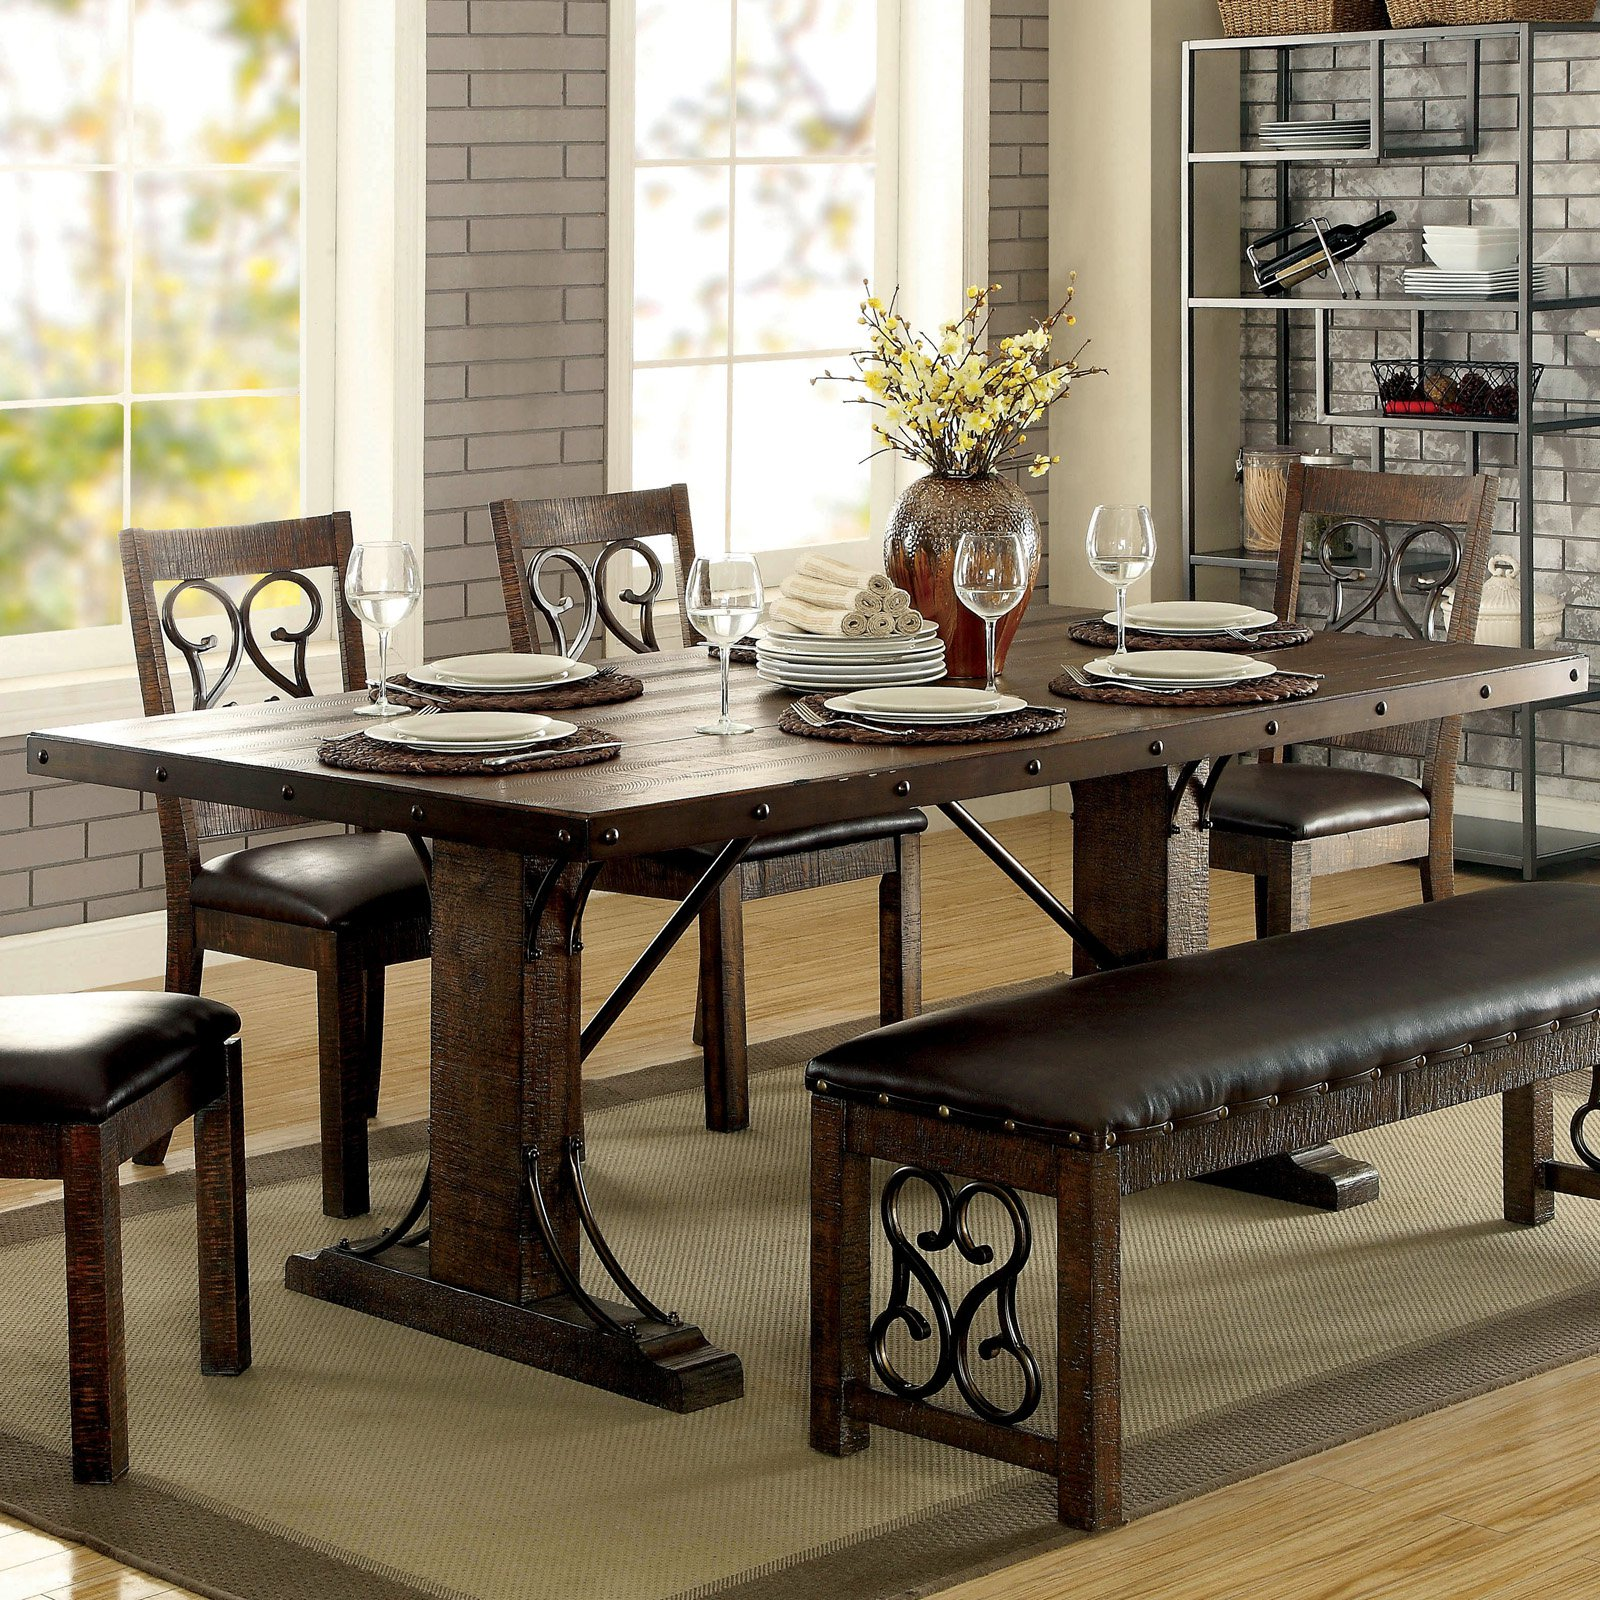 Furniture of America Thwan Traditional Plank-Style Metal Accent Dining Table